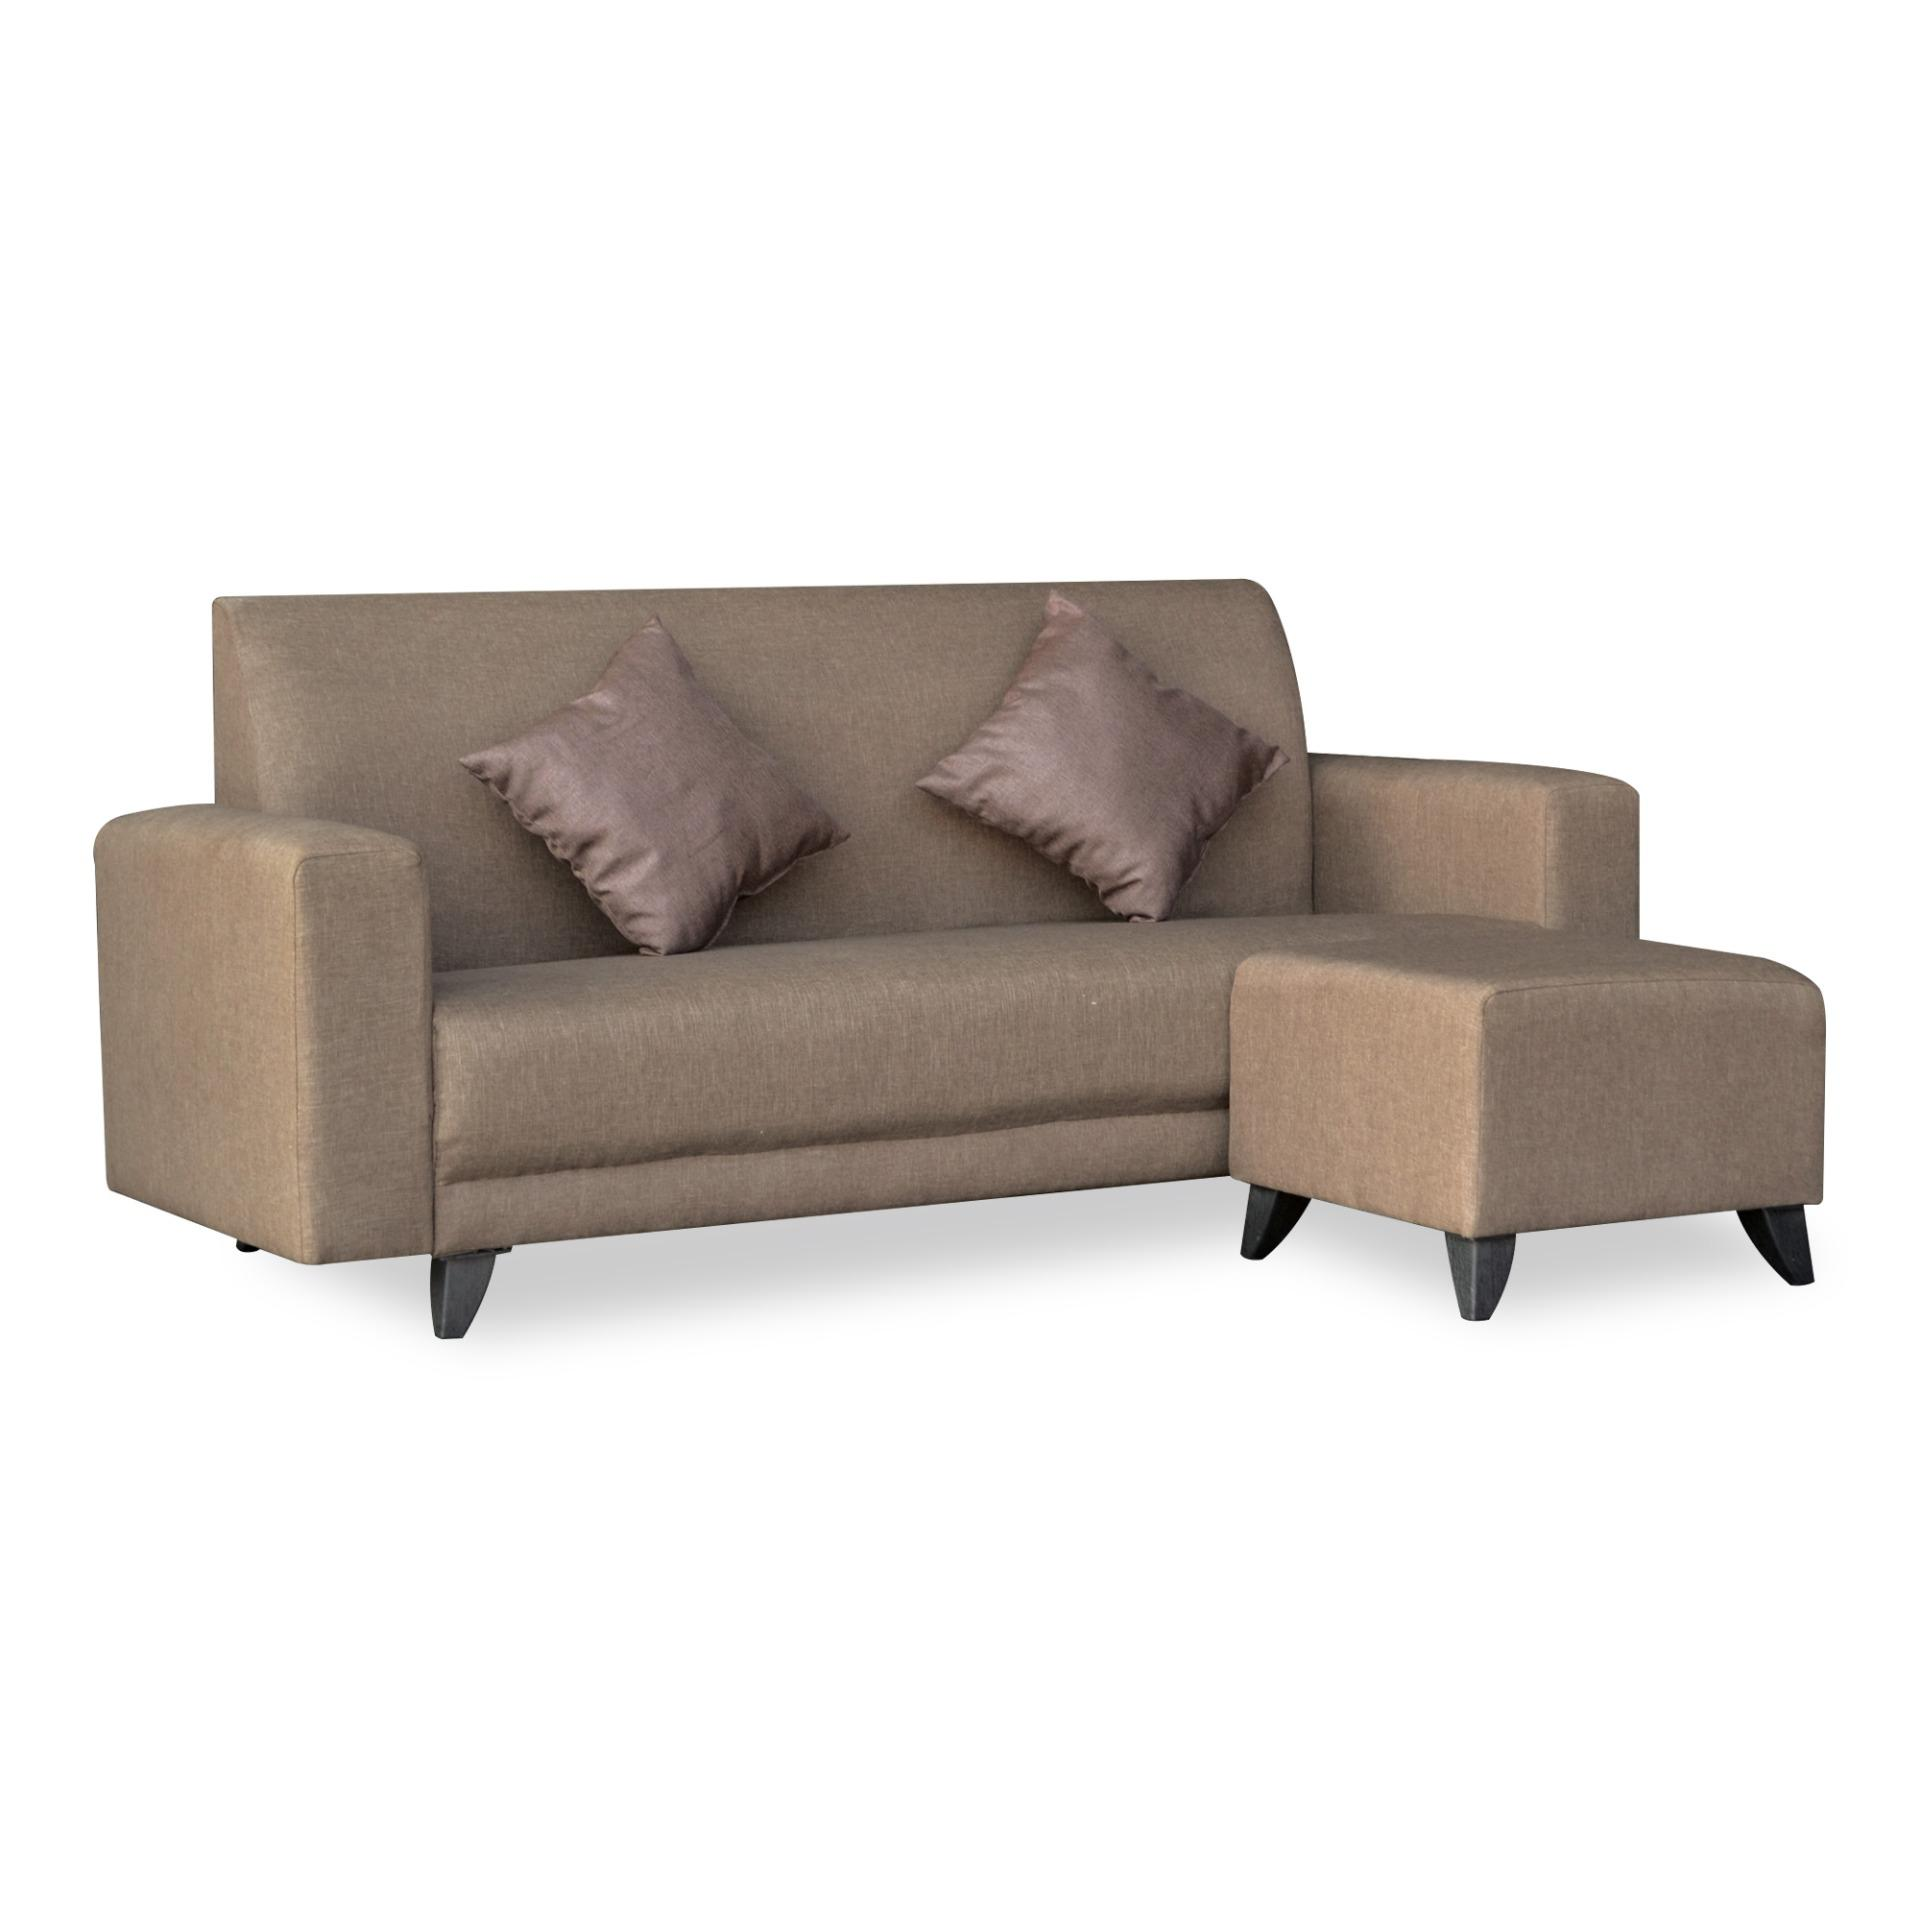 Elia 3 Seater Fabric Sofa With Stool (FREE DELIVERY)(FREE ASSEMBLY)